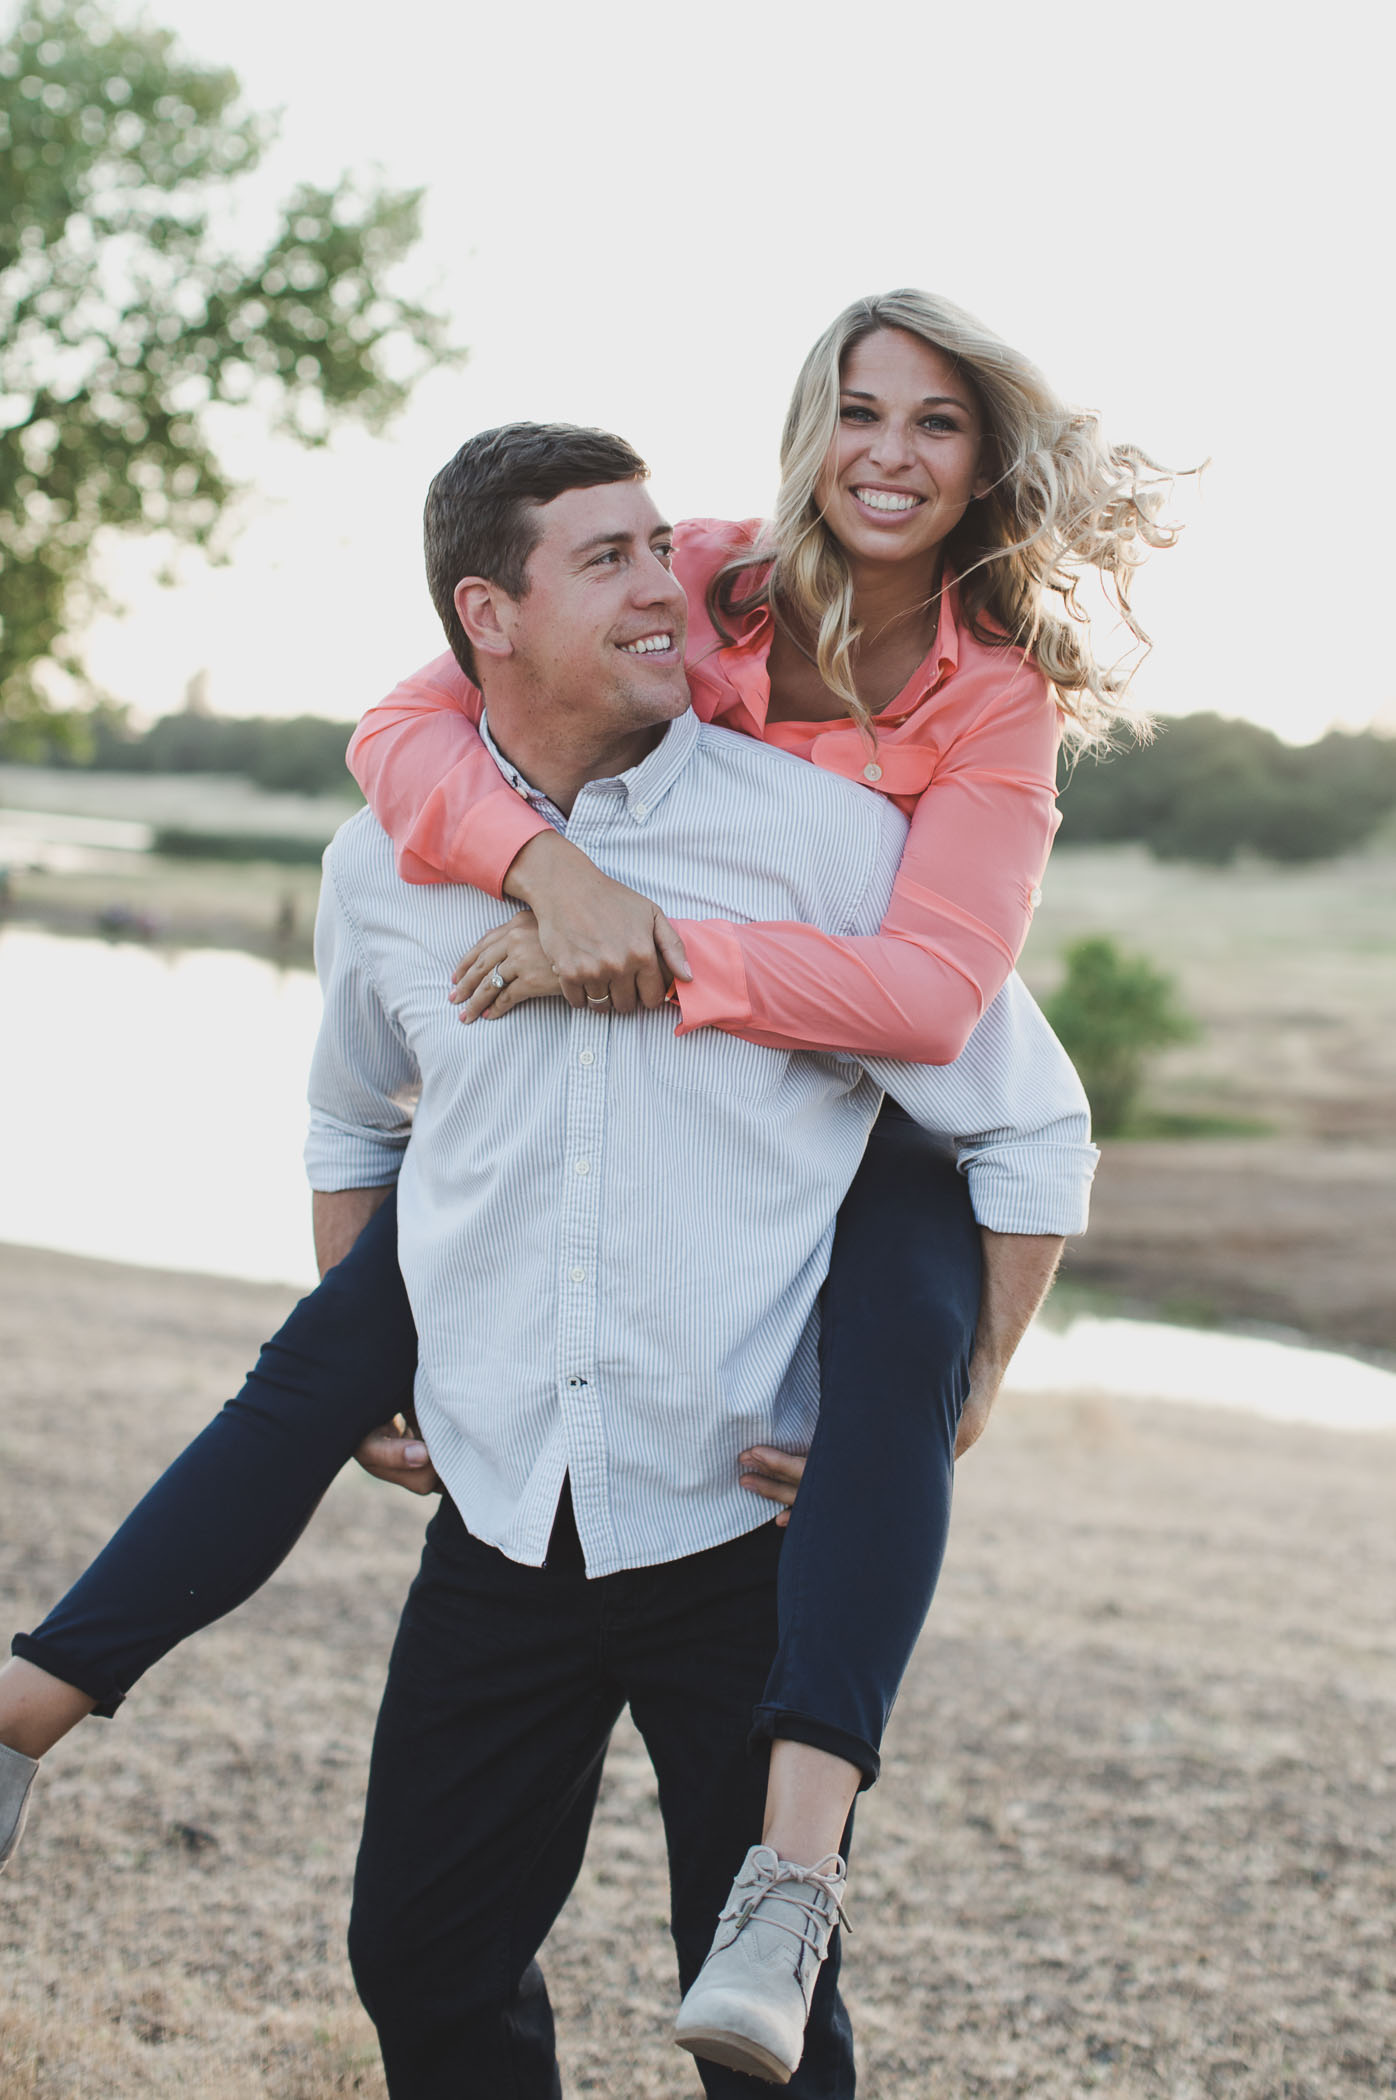 AVH_Photography_upper_bidwell_park_engagement_photography_chico_california_spring_bidwell_golf_course_0037.jpg